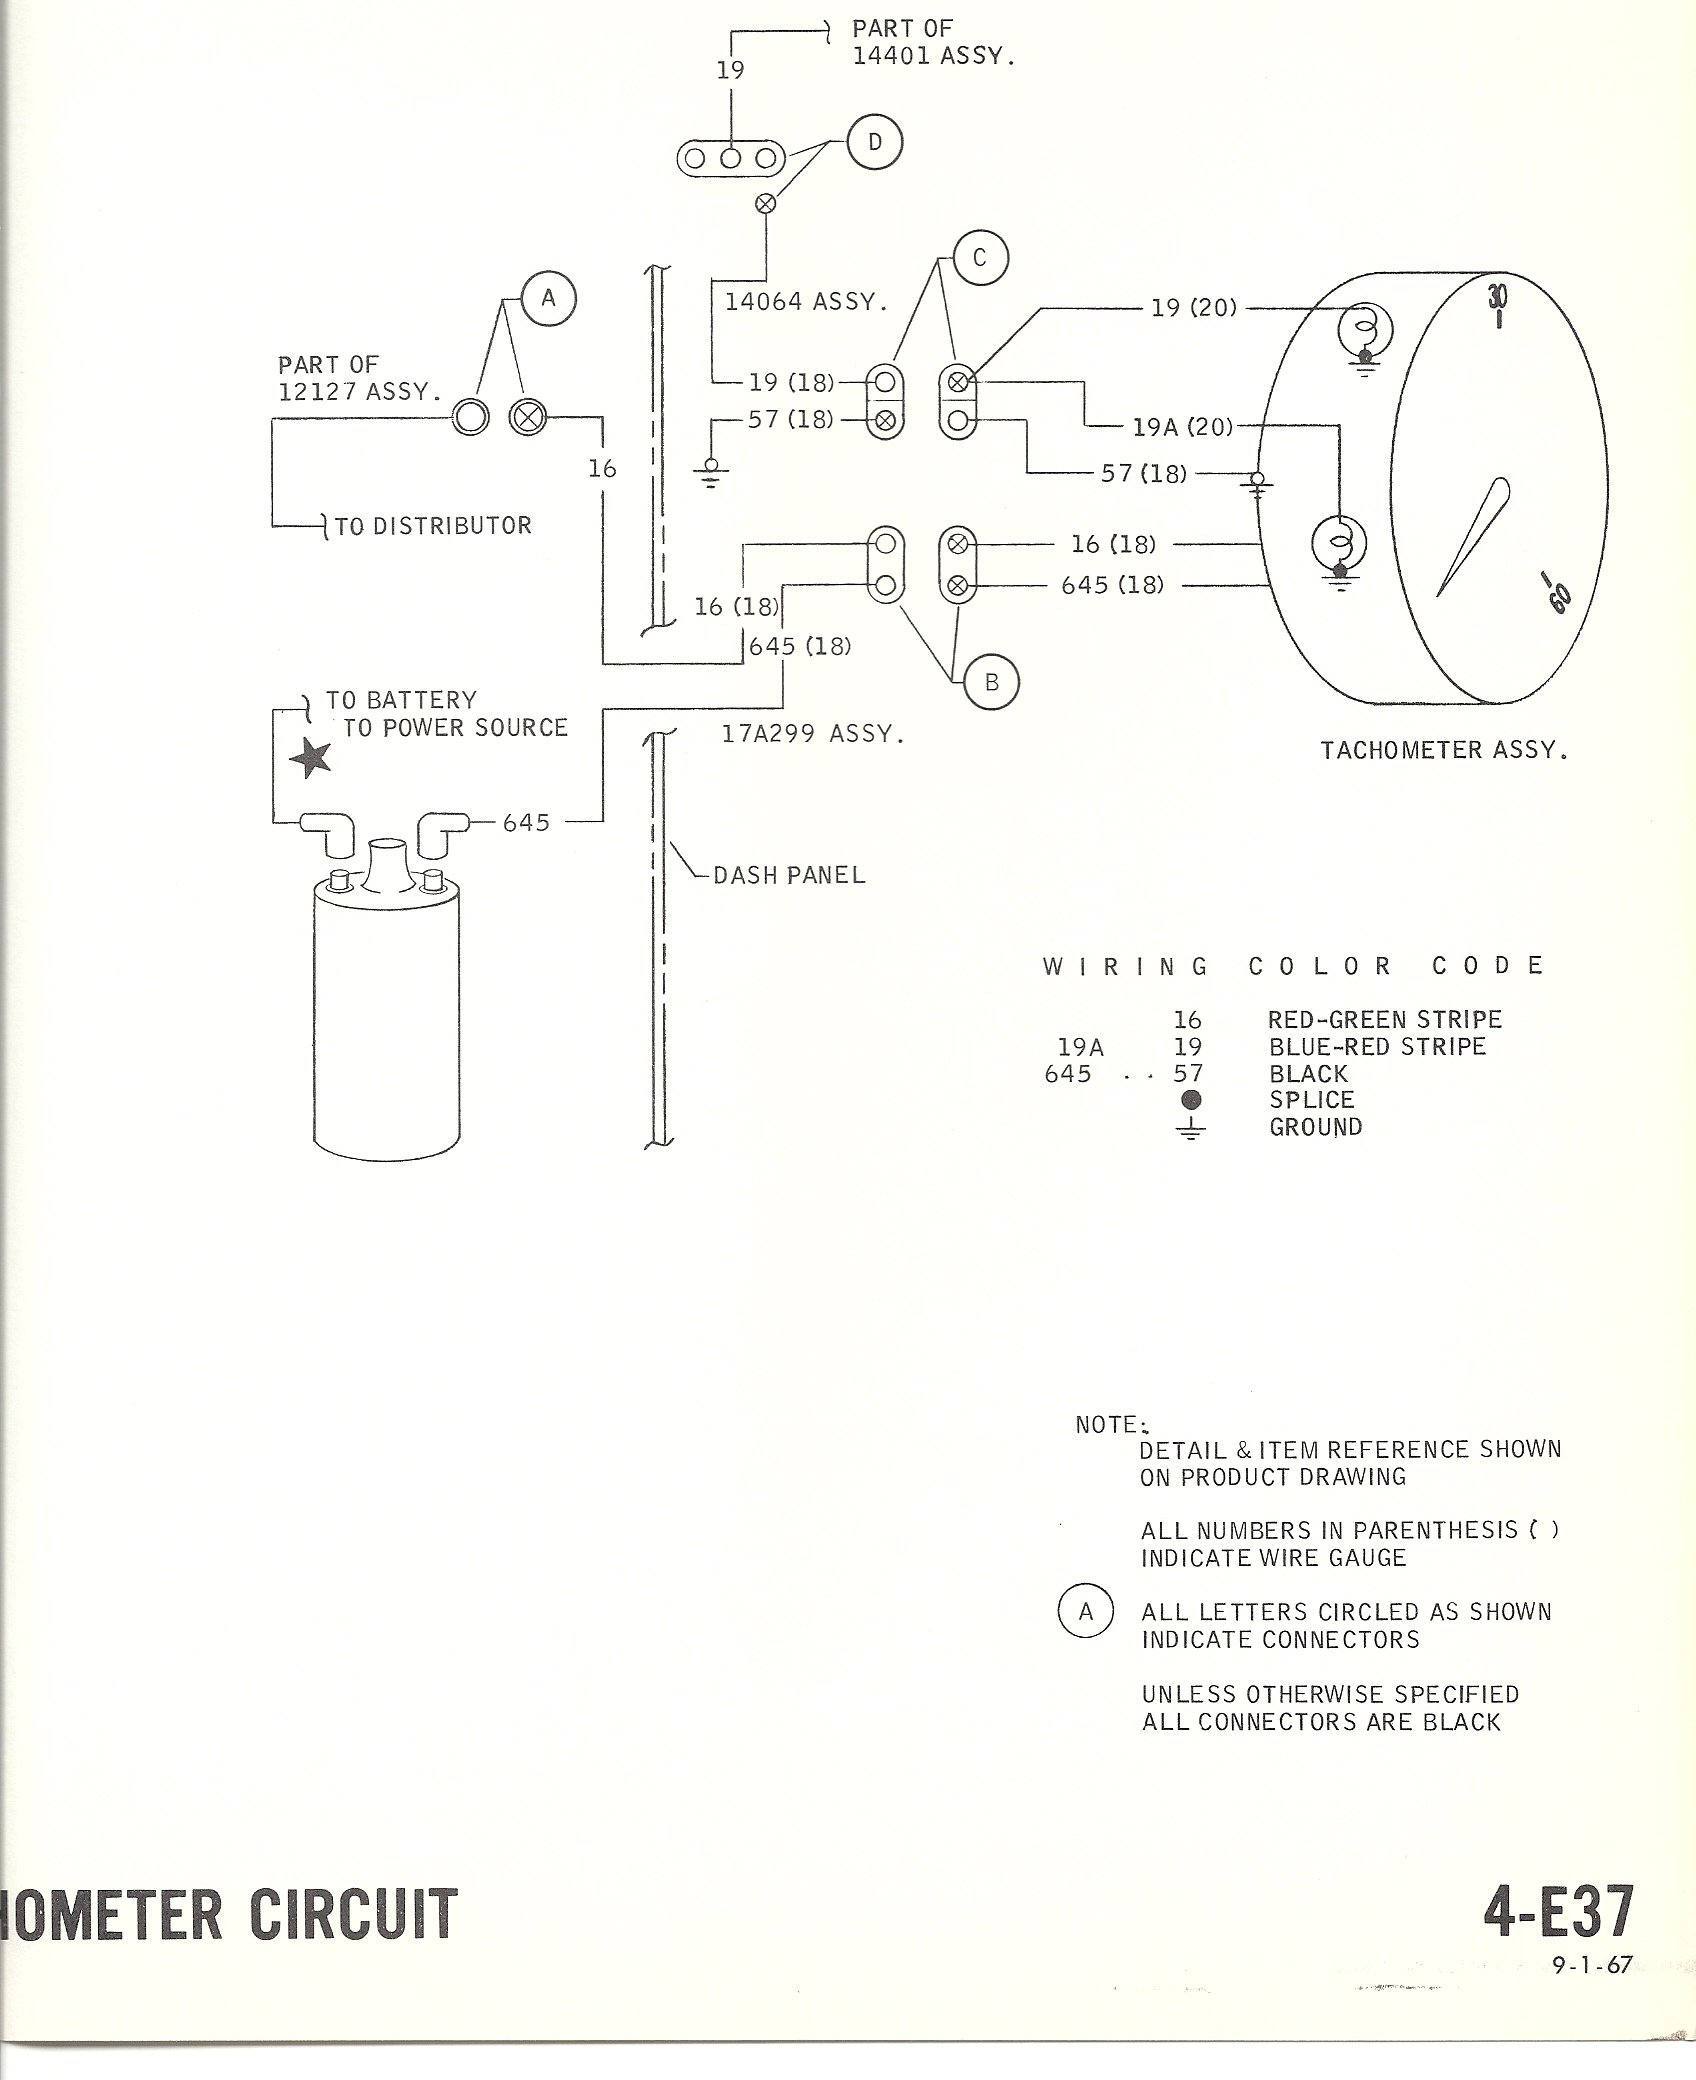 68 Ford Mustang Wiring Diagram Worlds Largest Selection Of Jc 120 Evo Ignition 1968 Diagrams With Tach Please Help Forum Rh Allfordmustangs Com